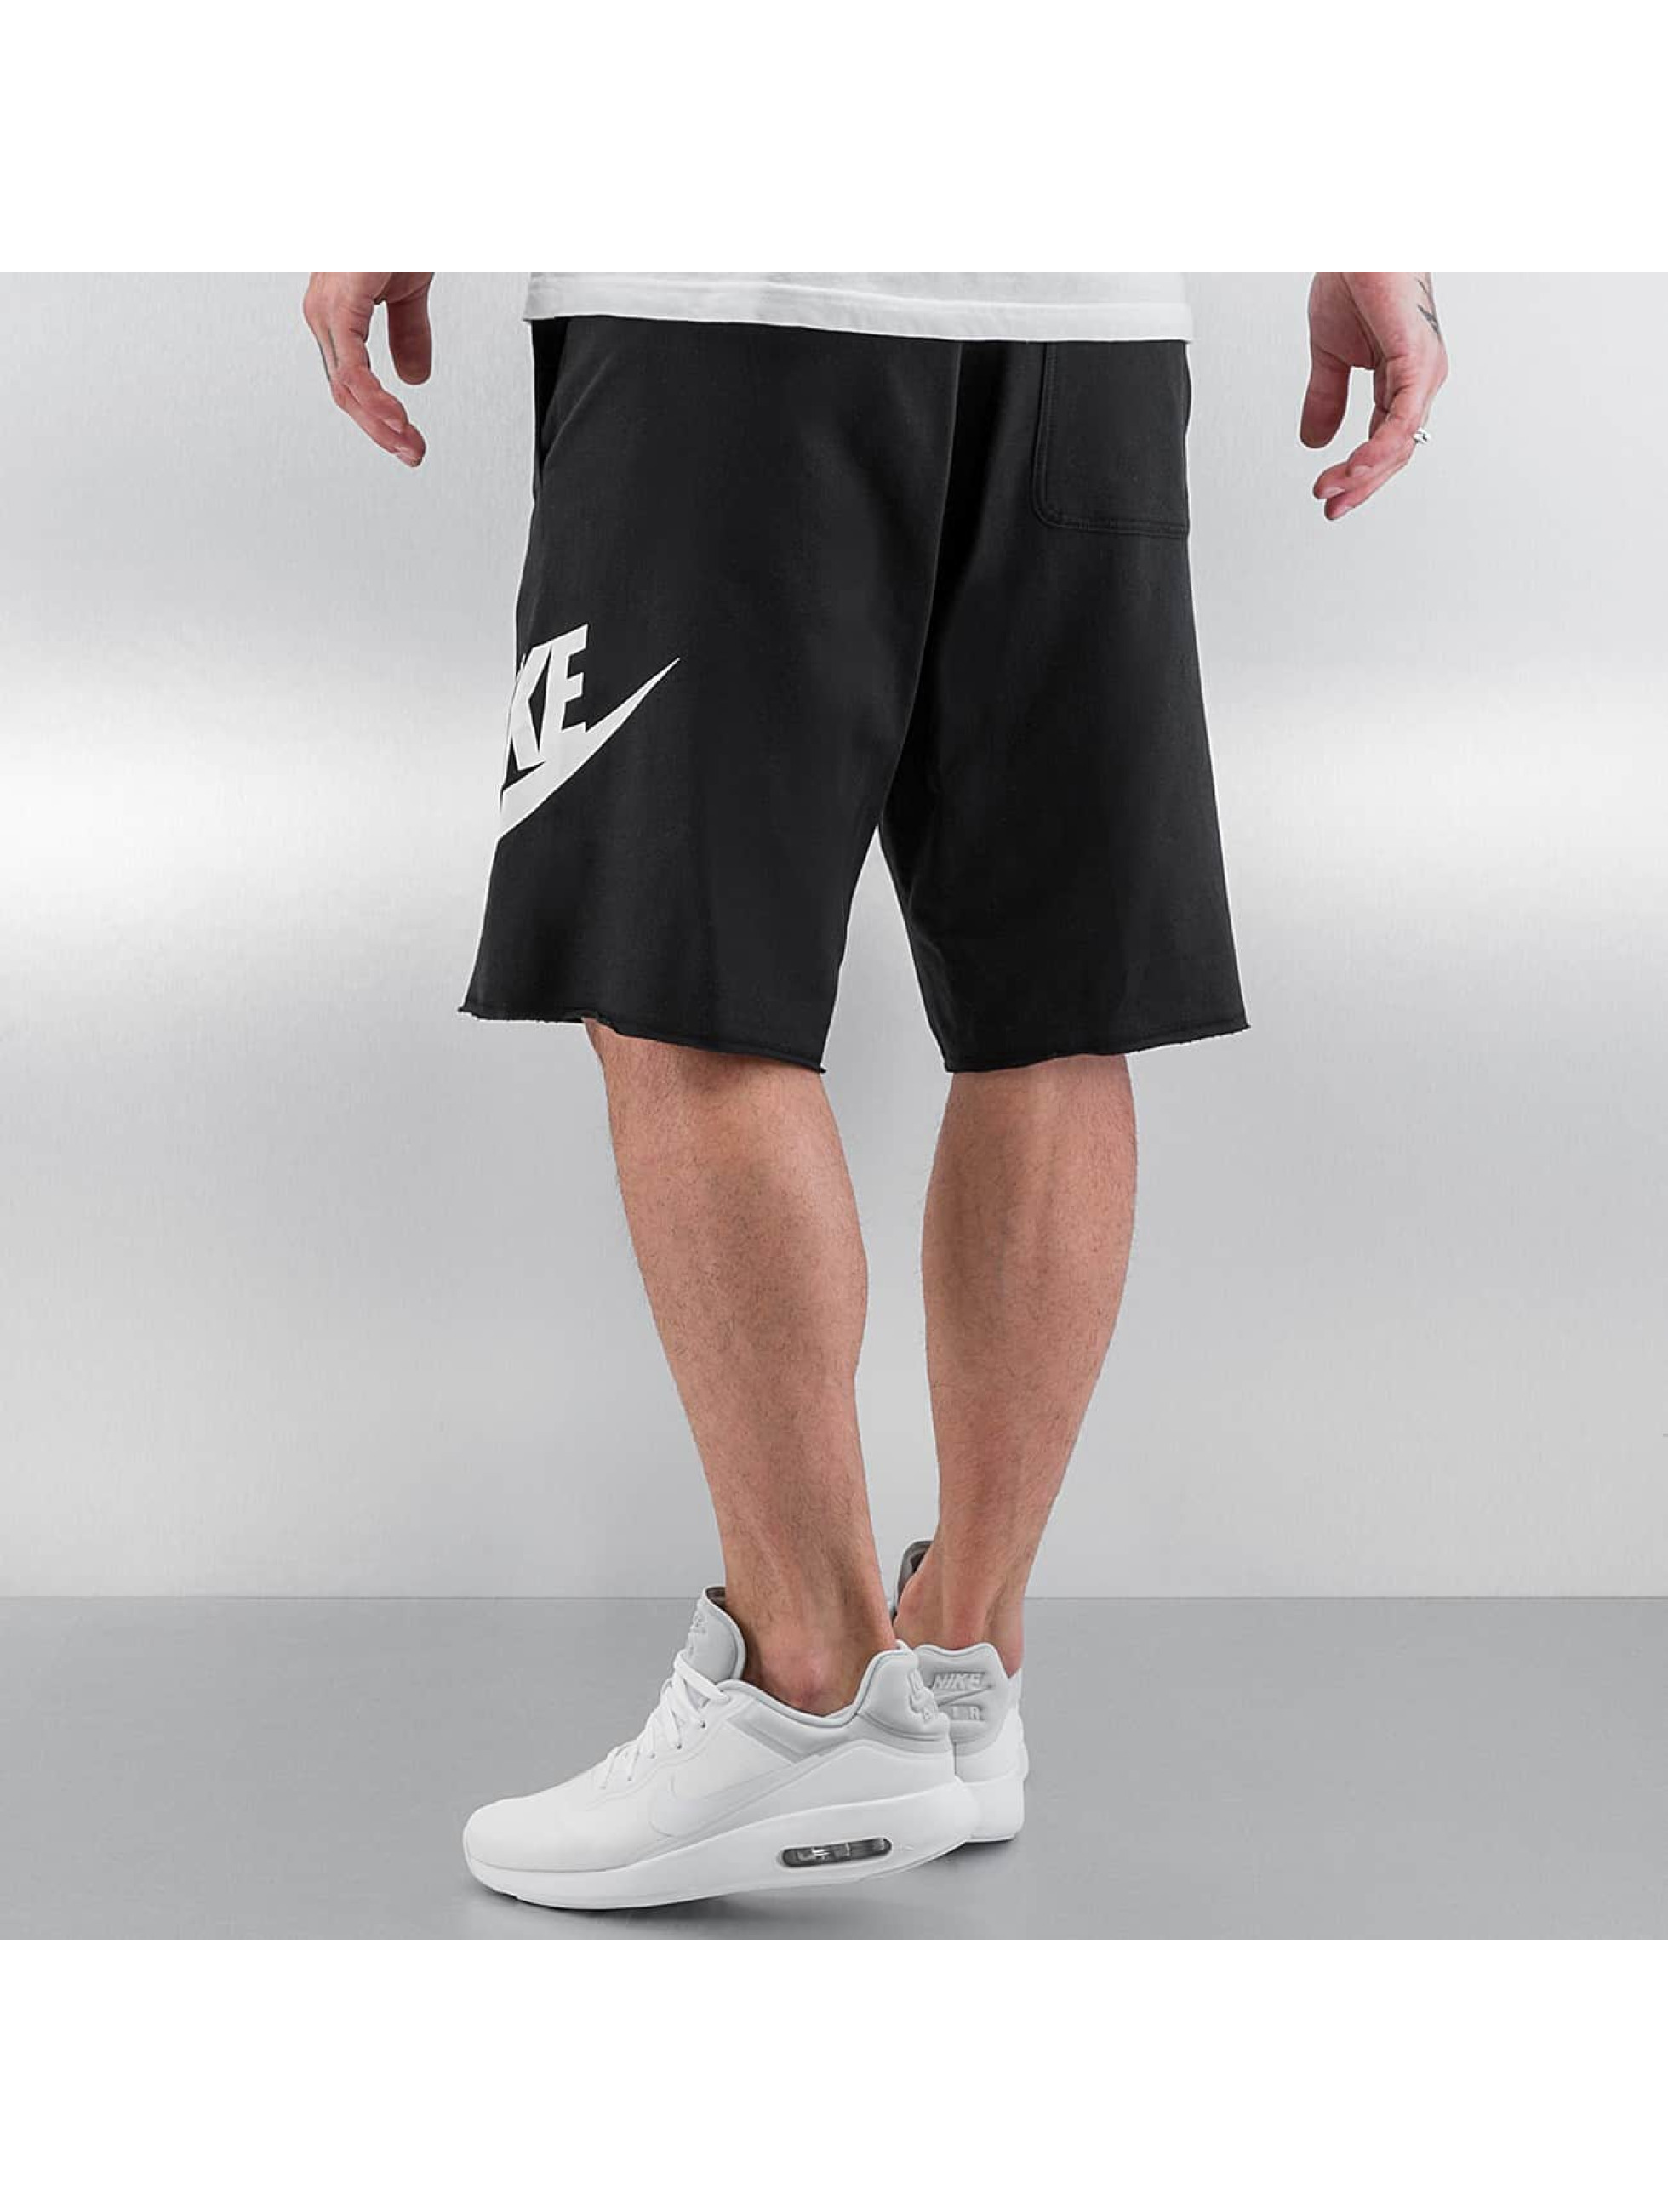 nike air max chaussure de skyline hommes - Nike Pantalon / Shorts NSW FT GX en noir 257854